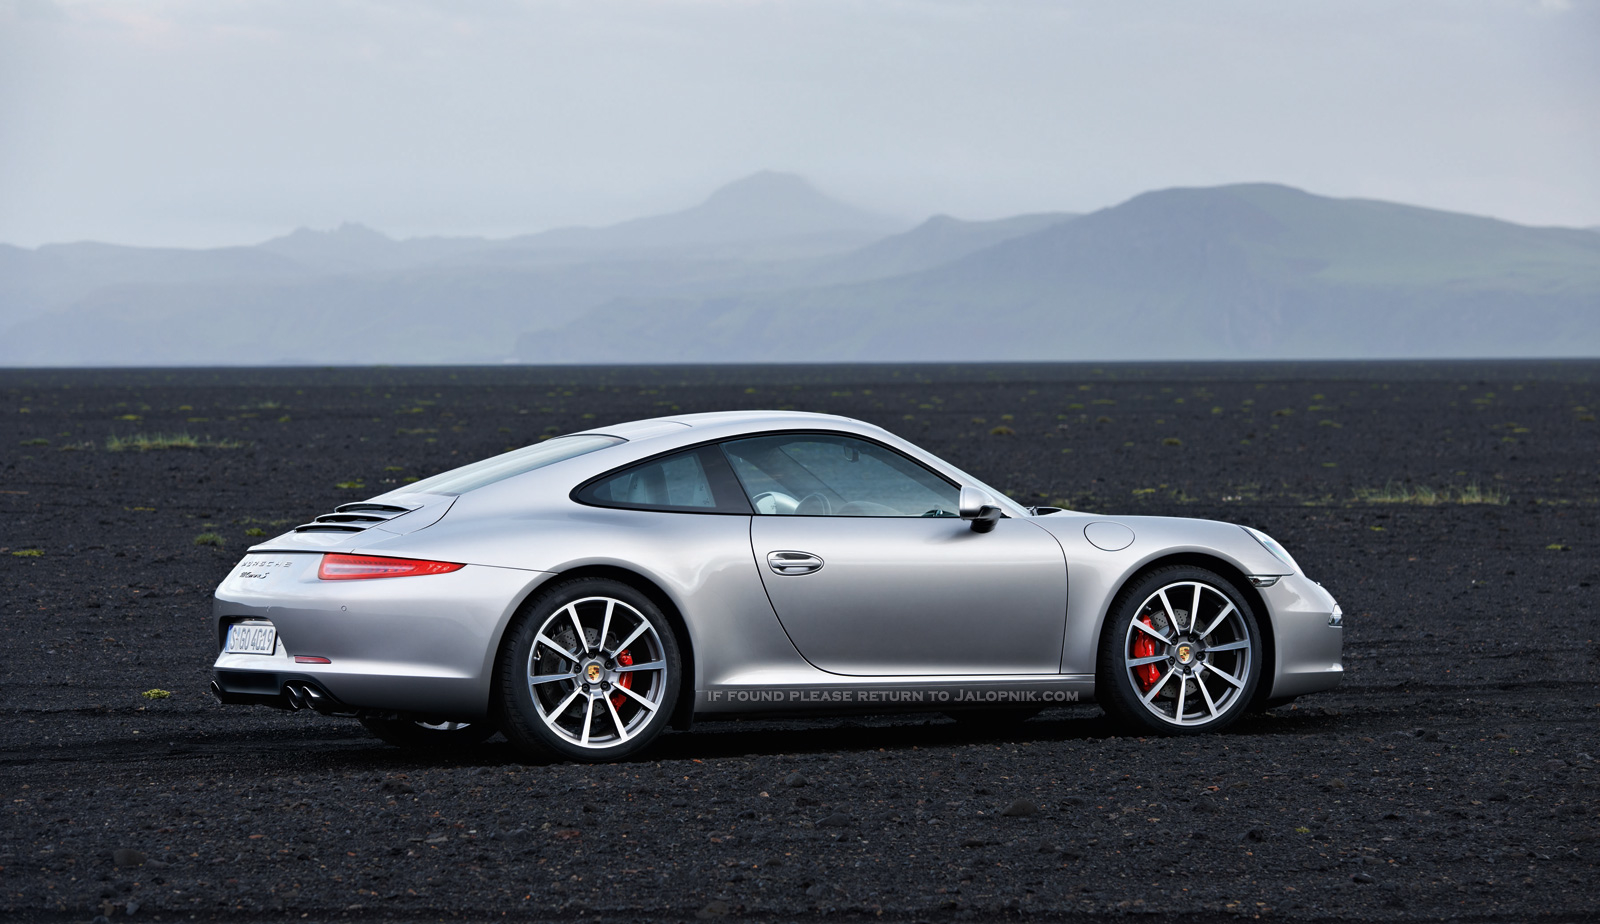 First Official New Porsche 911 Pictures (Porsche 991